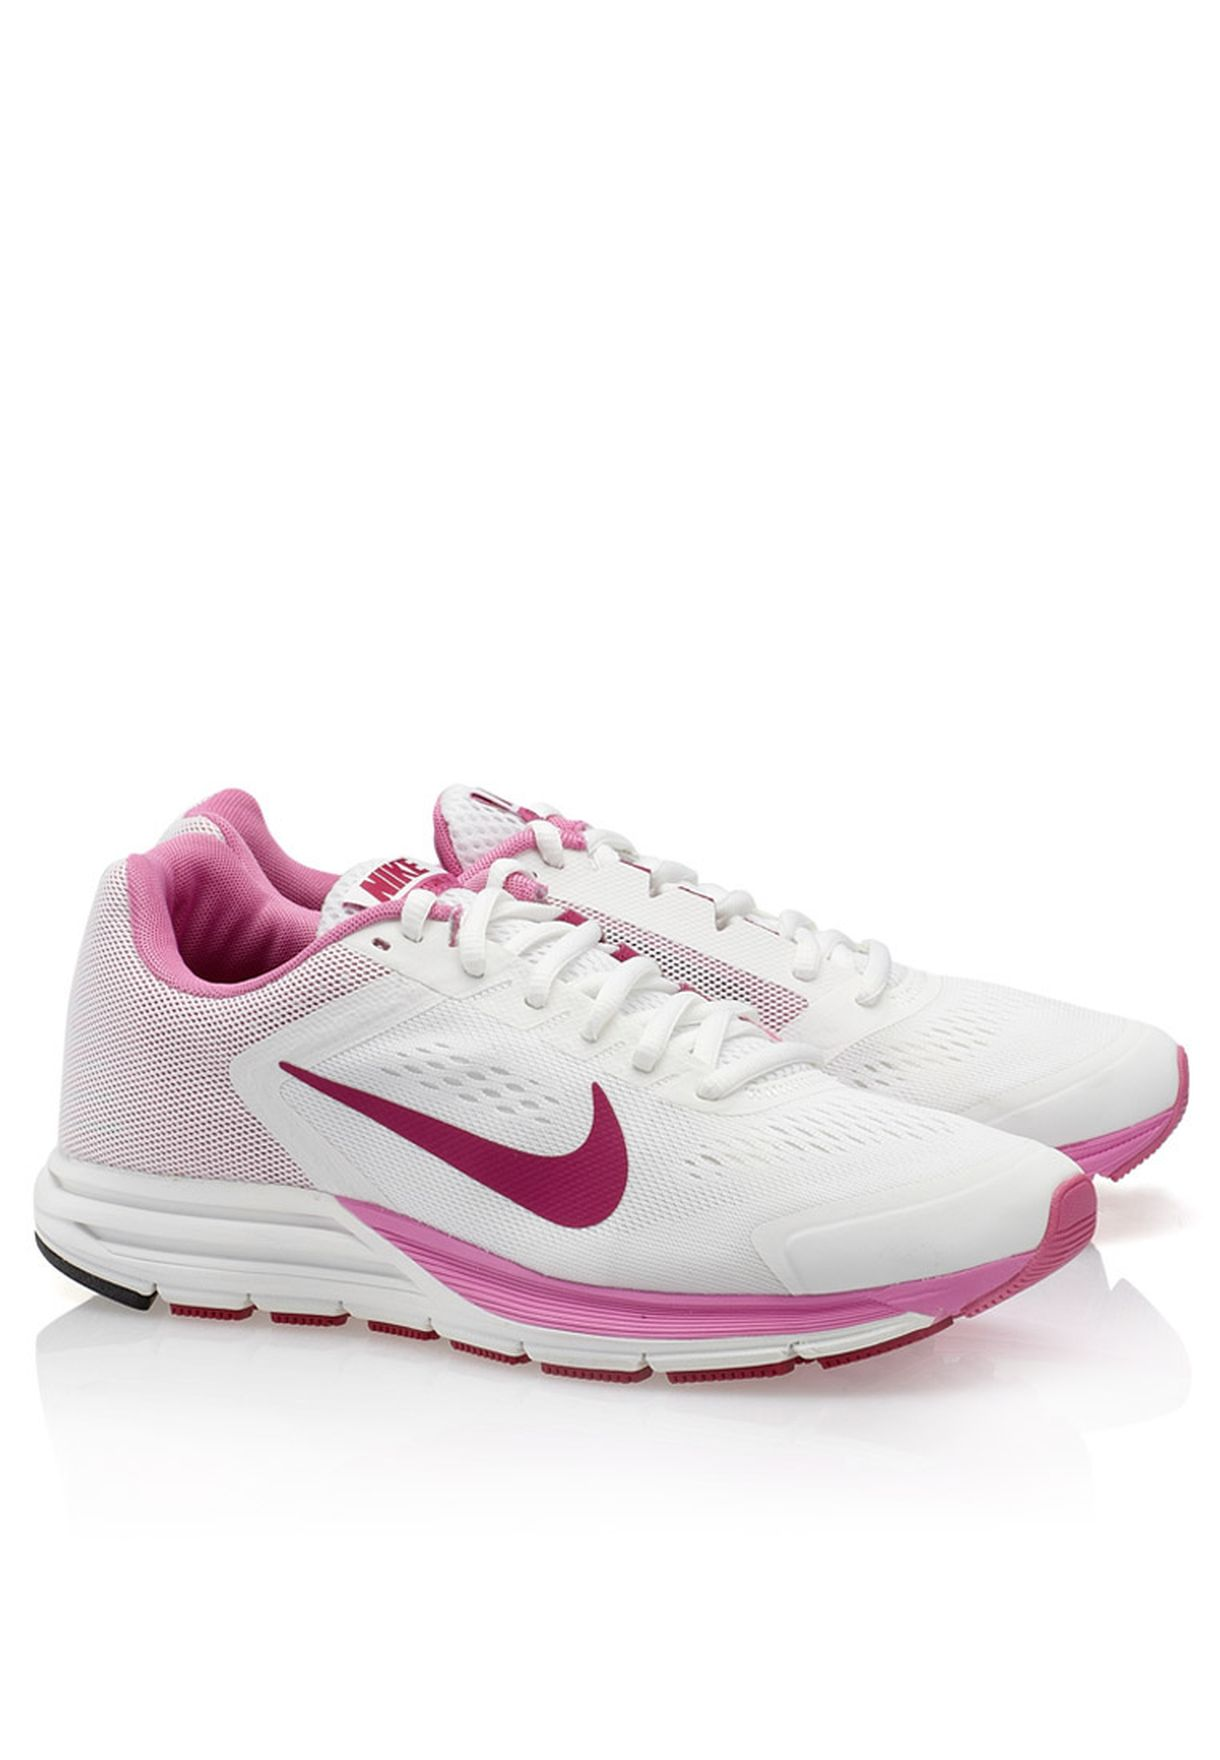 9ccc6b96495fe Shop Nike white Zoom Structure+17 615588-105 for Women in UAE ...